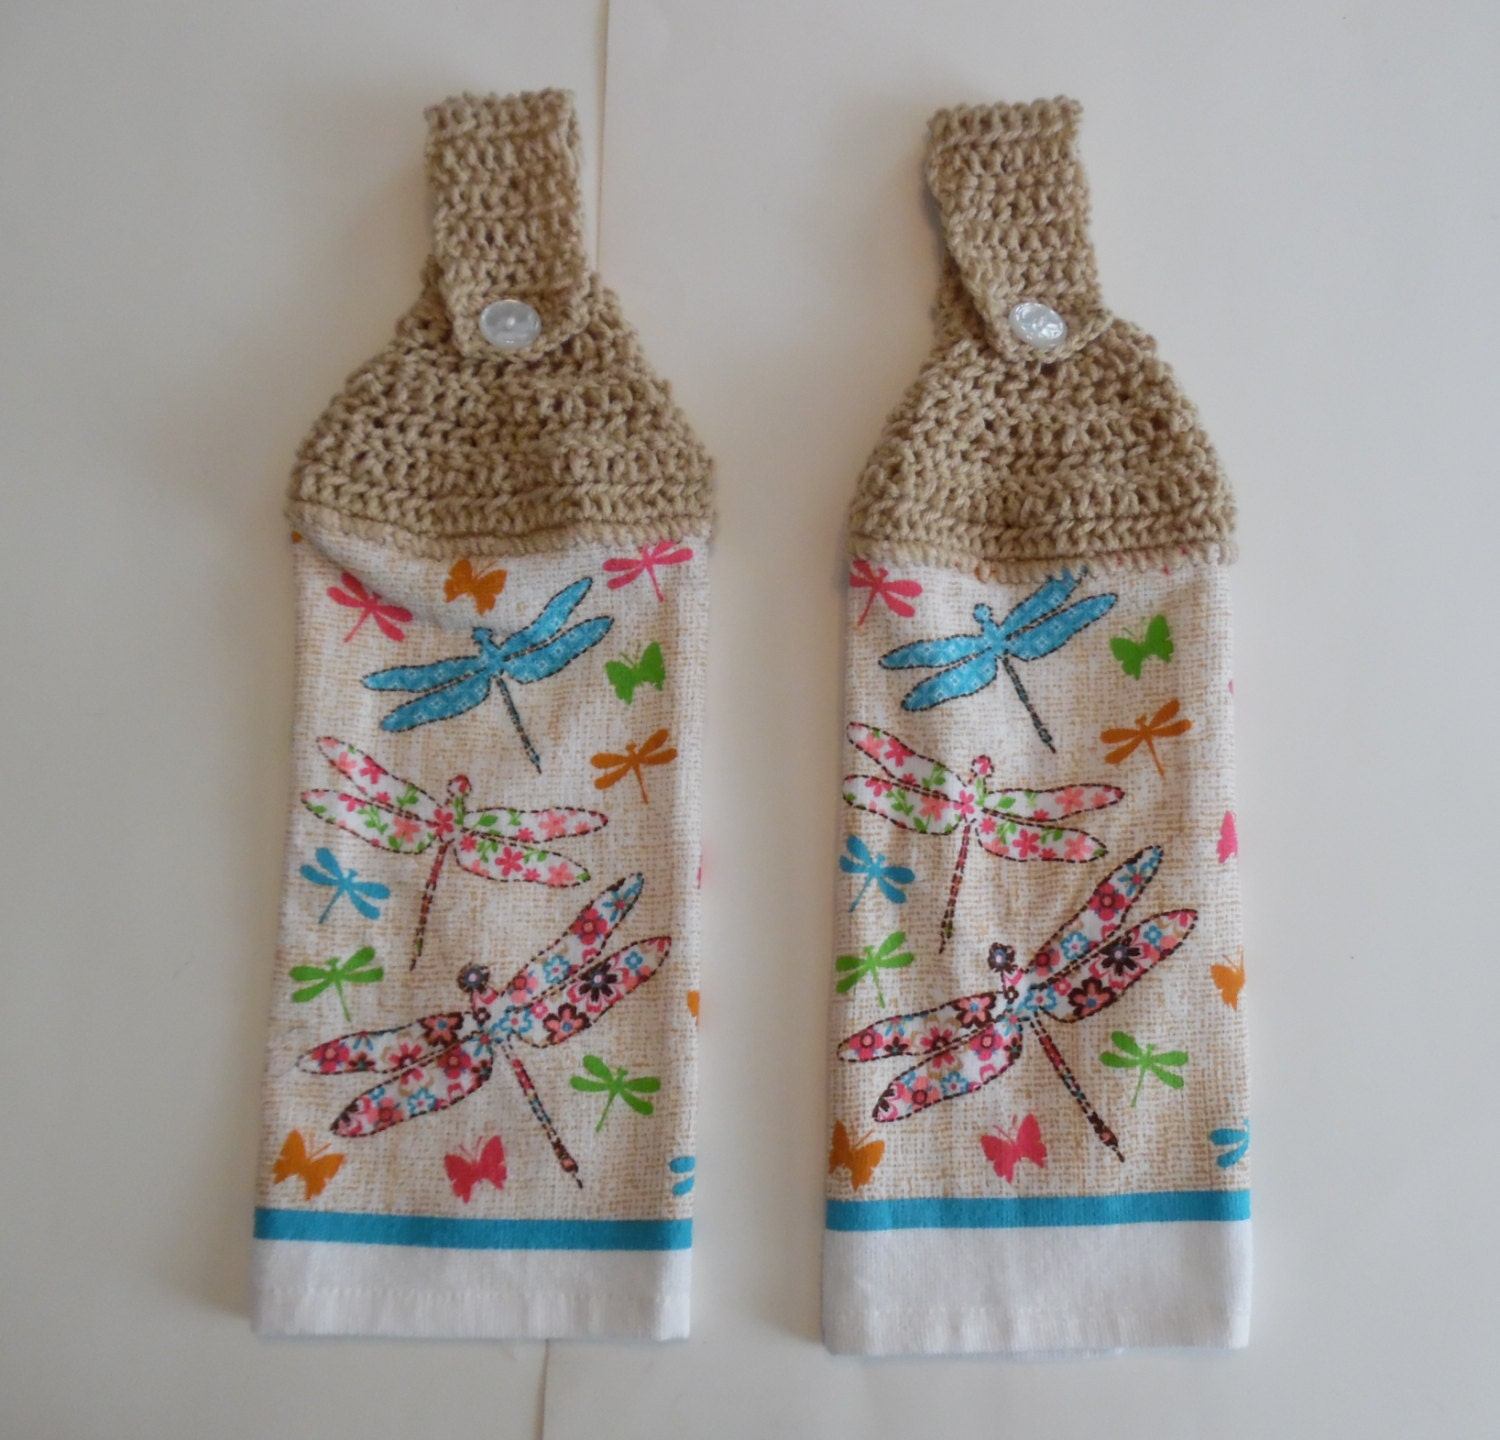 Crochet Kitchen Towel : crochet summer towel hand towel kitchen towel by donnascraftcorner